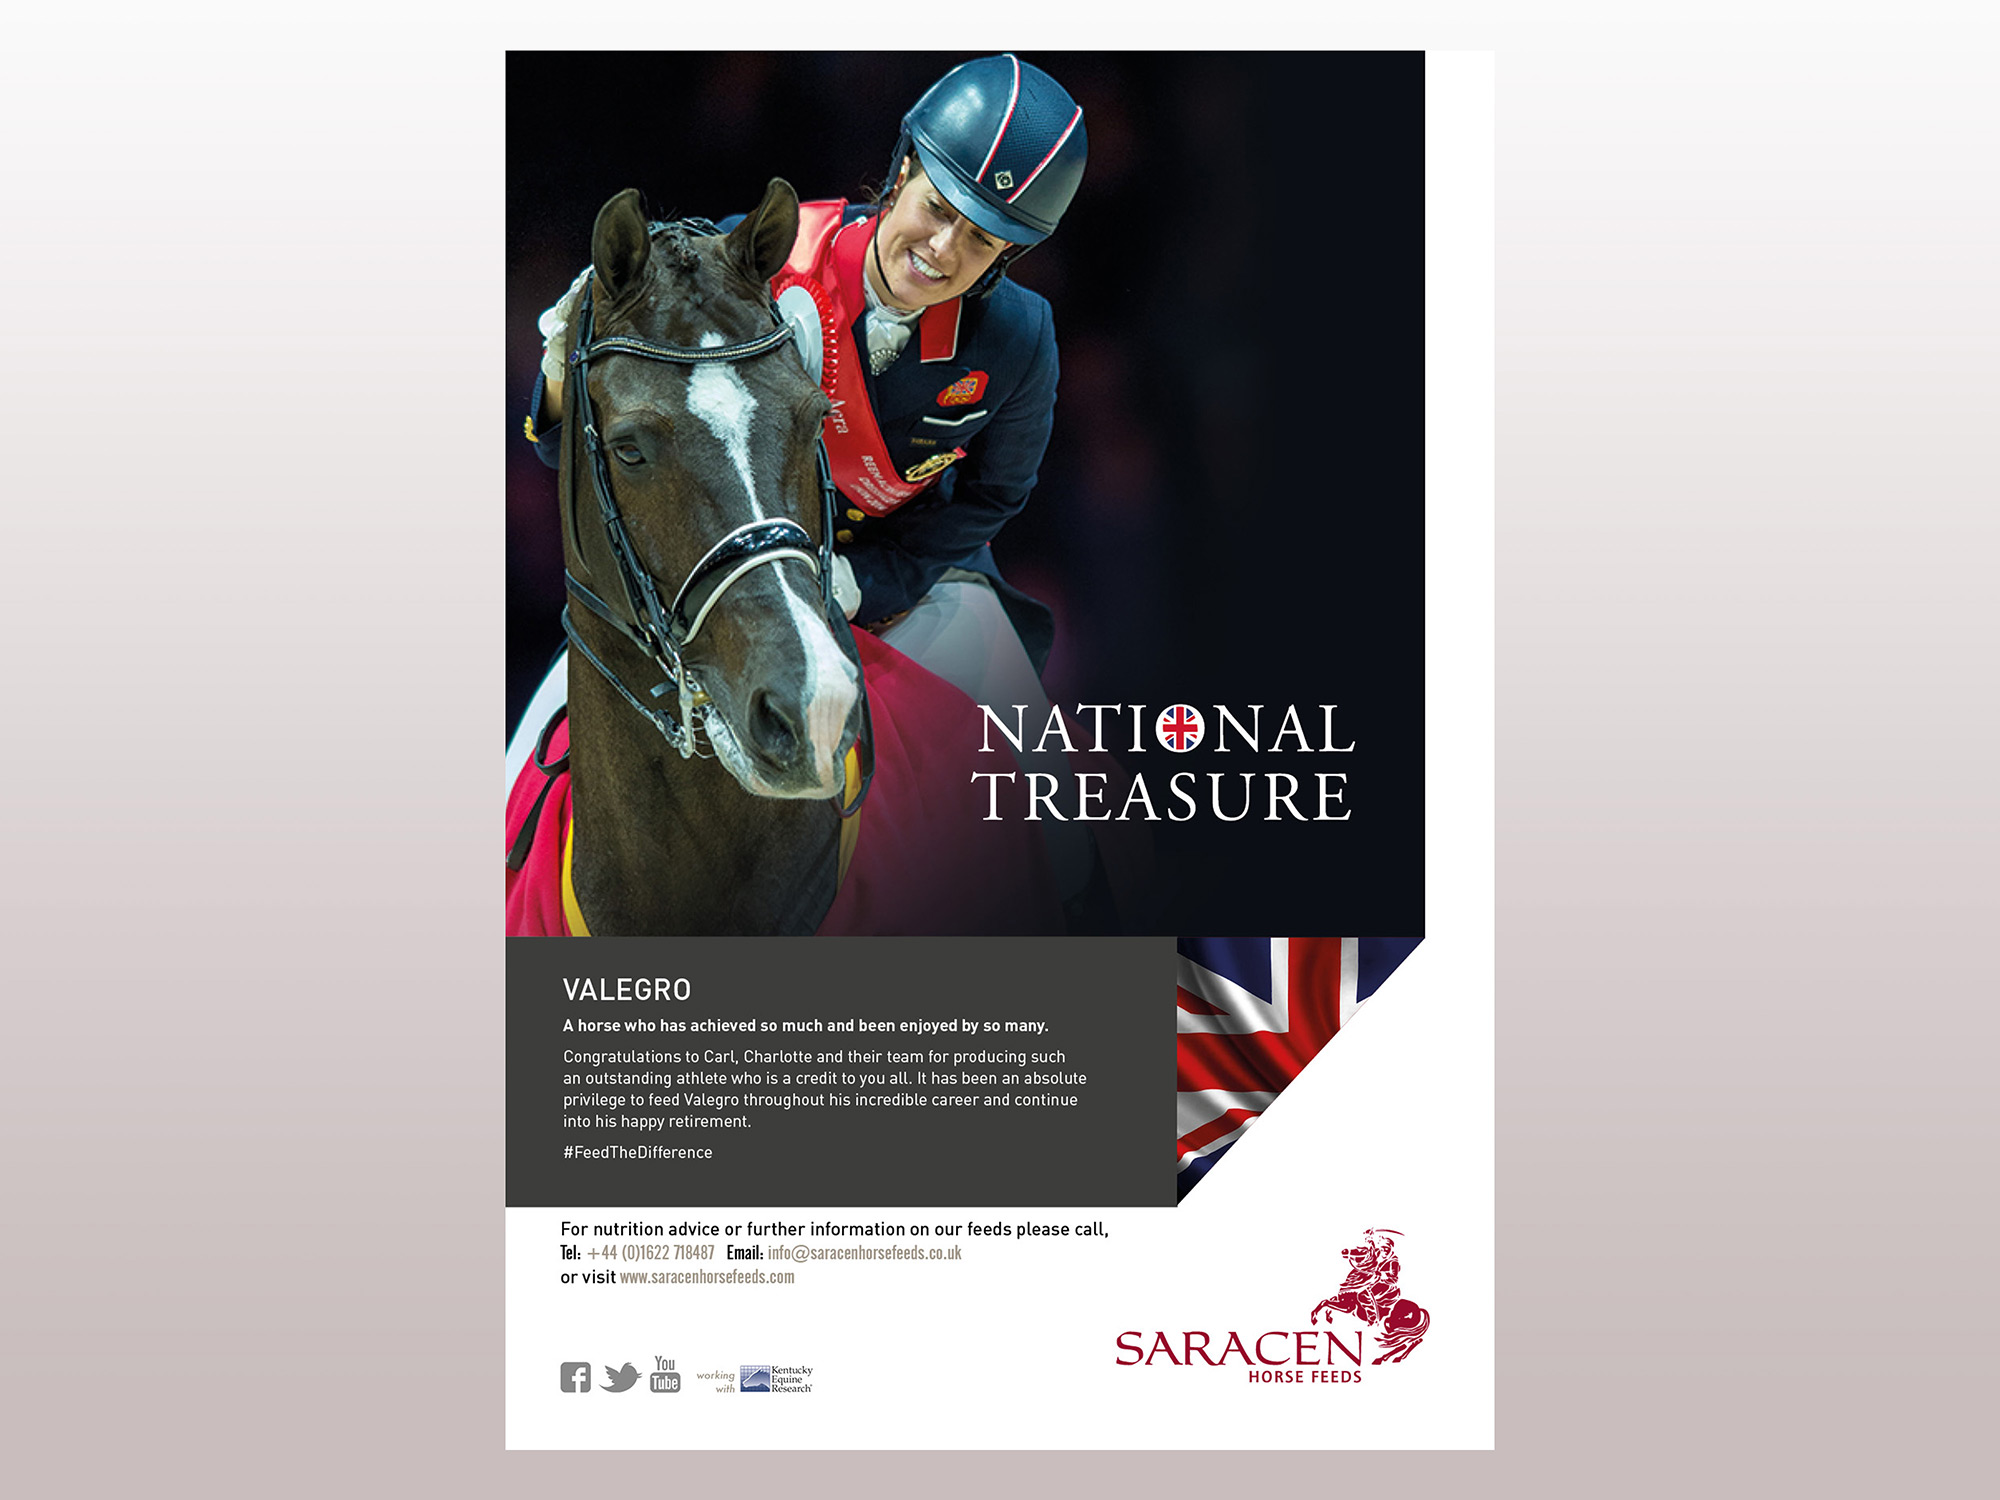 Saracen Horse Feeds National Treasure Magazine advert Valegro